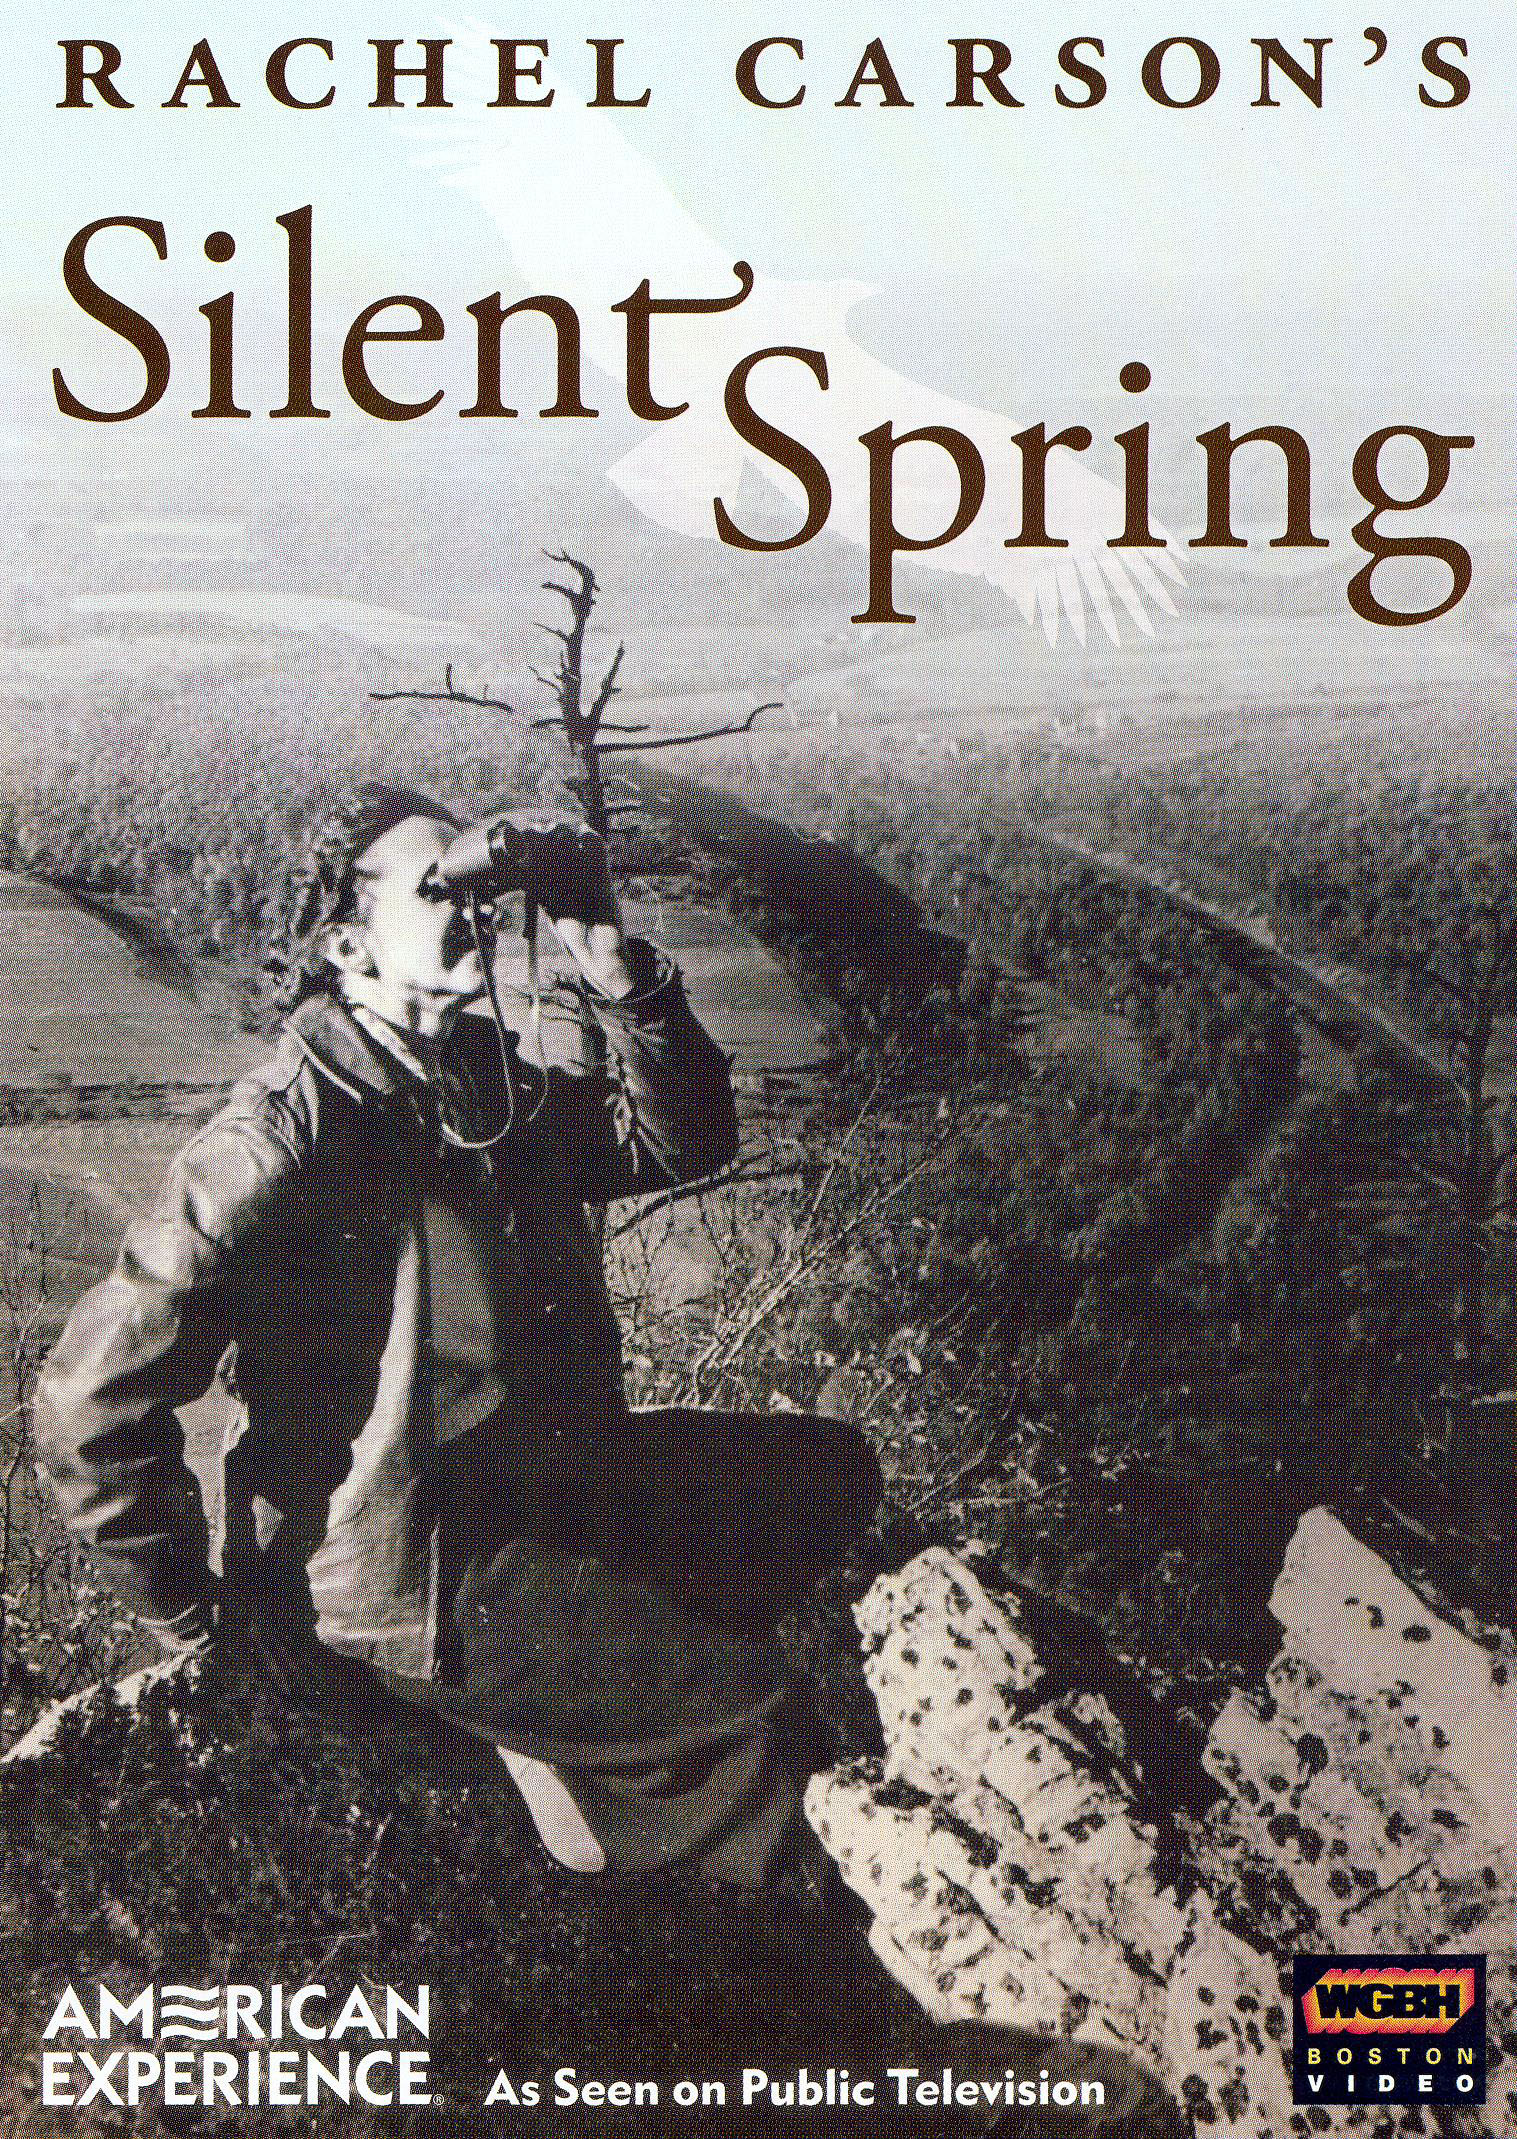 silent spring essay Topic: silent spring paper details: rachel carson has been called the founder of the us environmental movement after you have read chapters 1 - 3 in her groundbreaking book silent spring, prepare a fully cited essay of 2-3 pages summarizing the issues she was bringing to light and their importance to the field of.